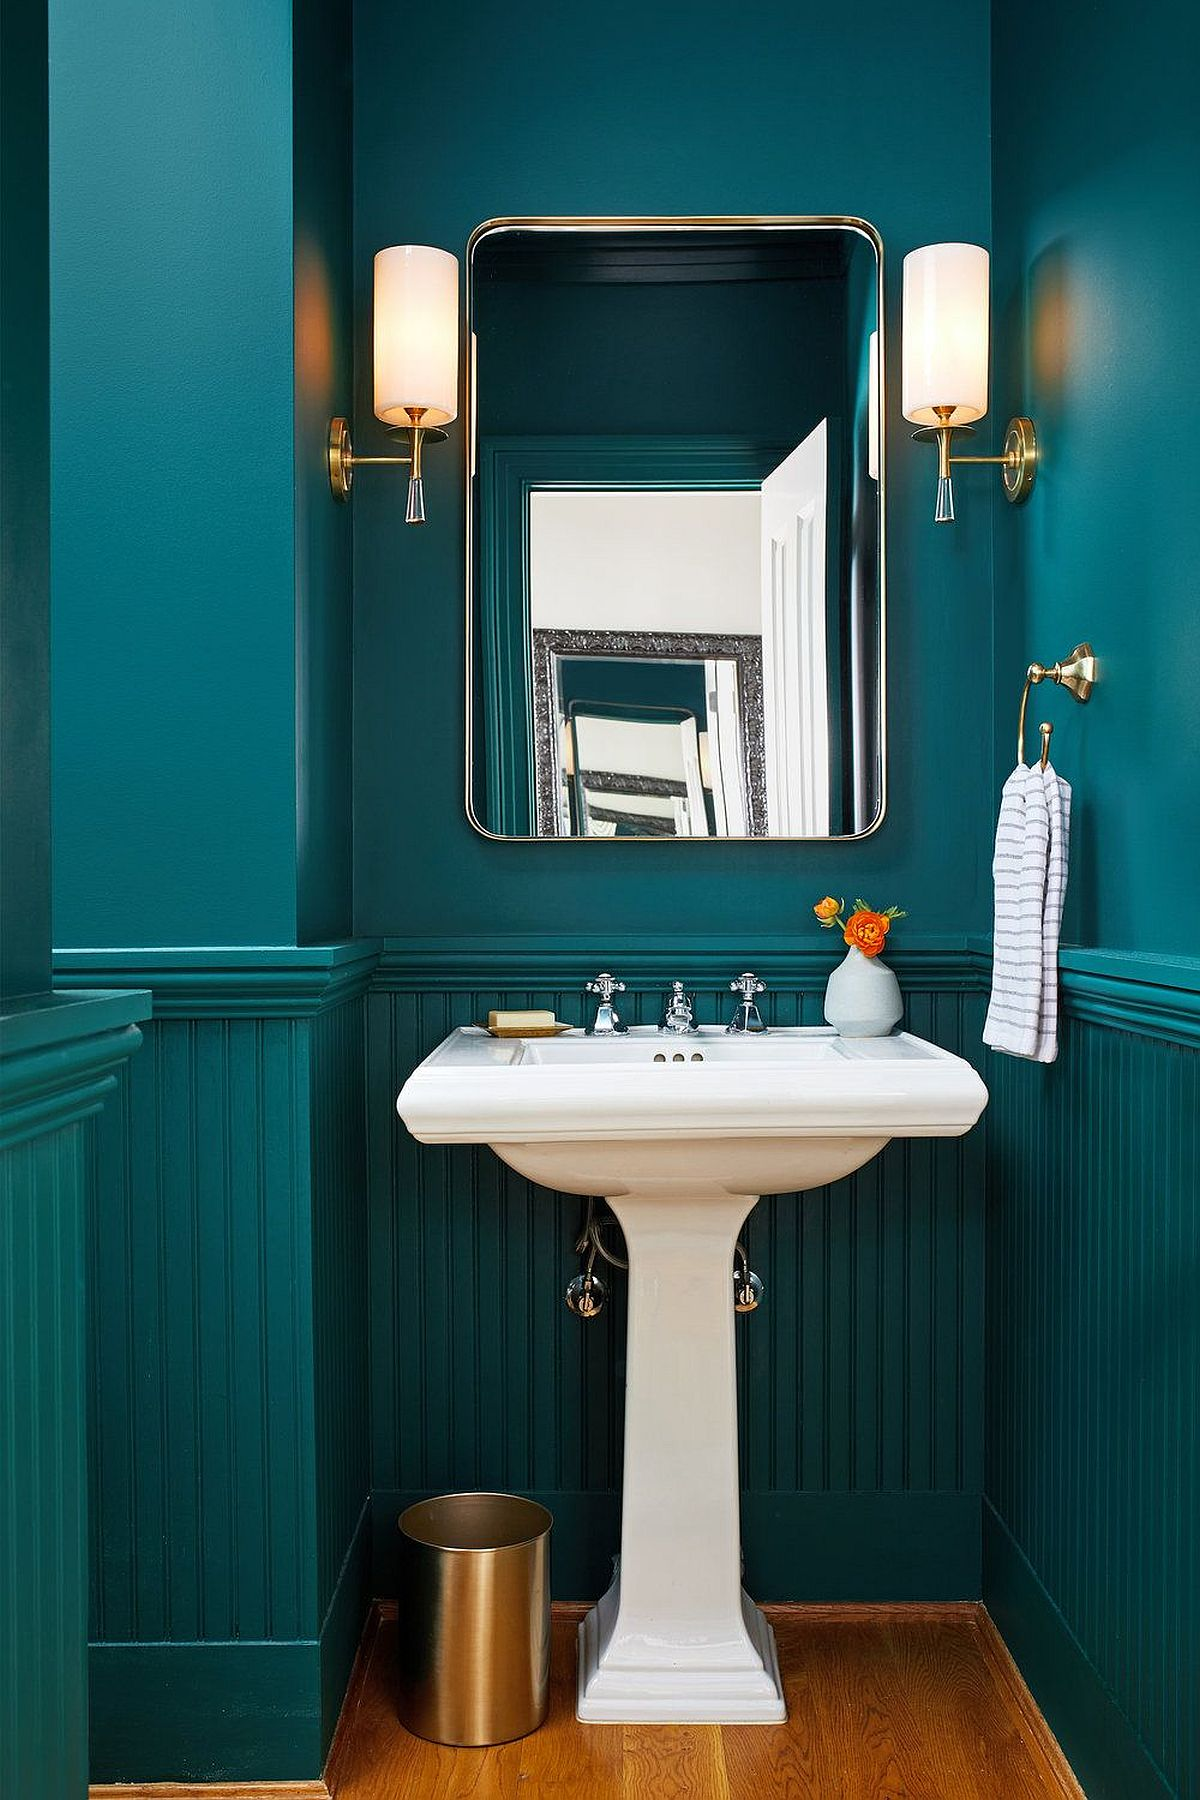 Gorgeous modern teal bathroom feels absolutely picture-perfect